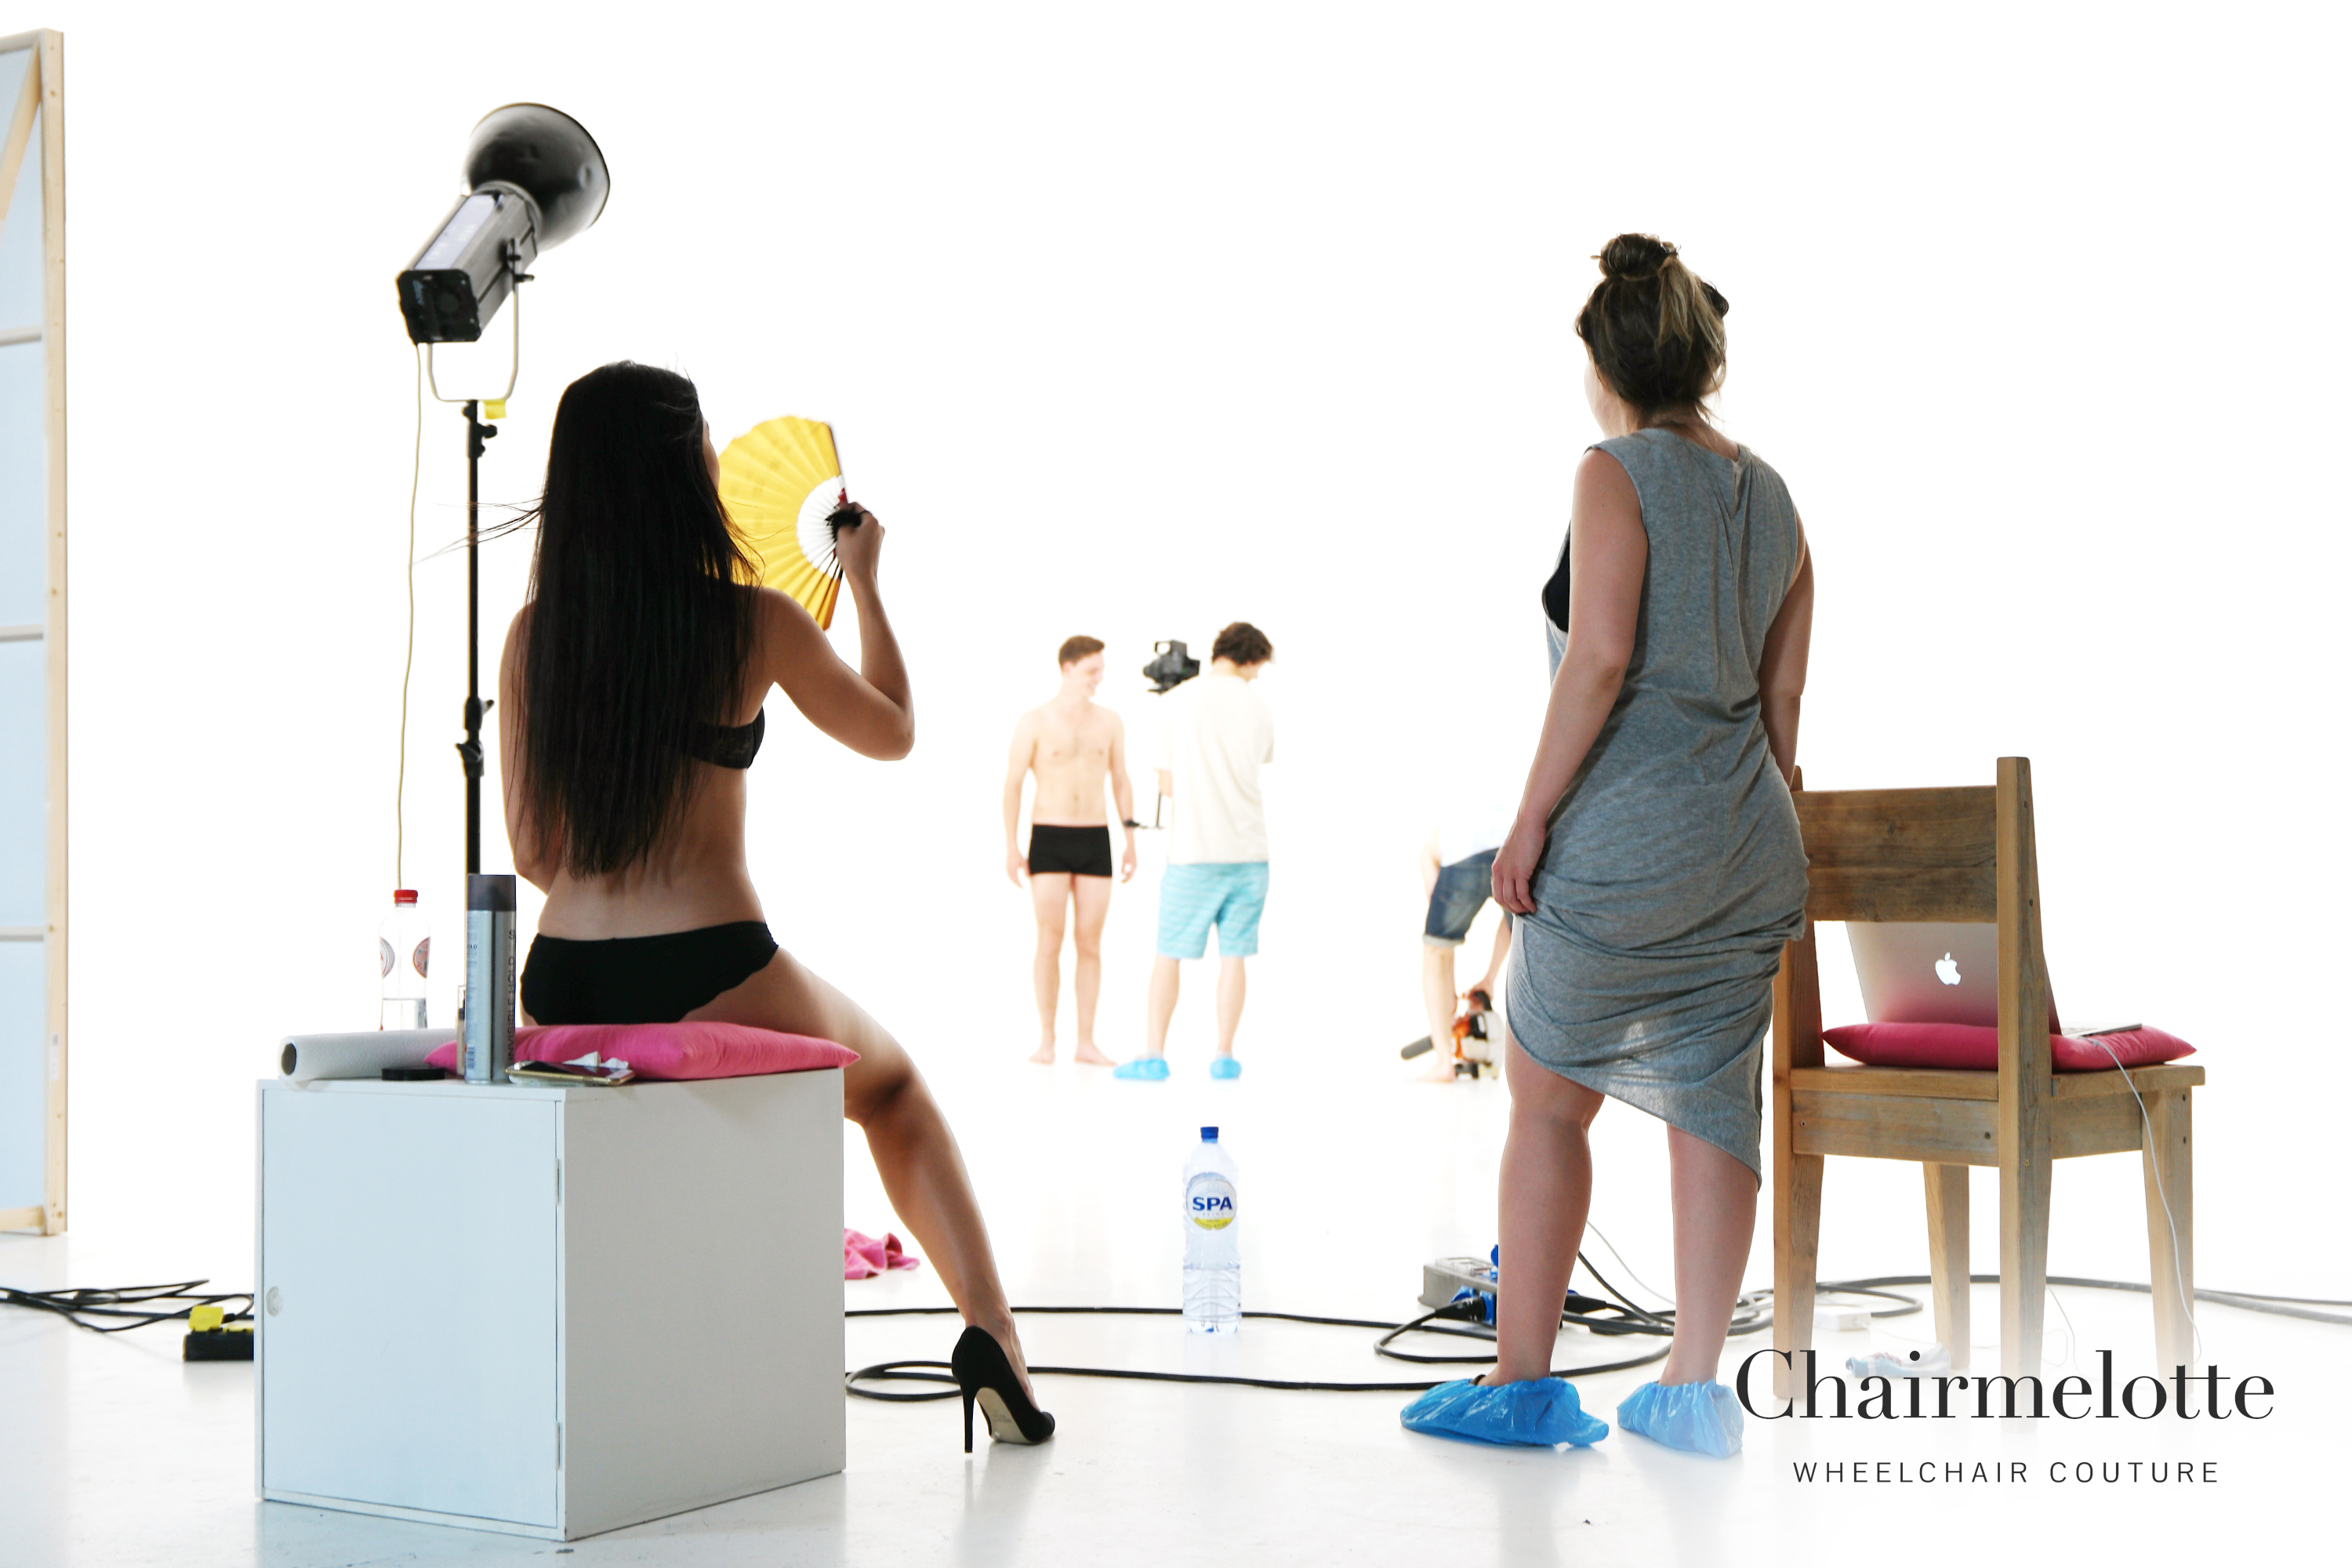 chairmelotte_behind_the_scenes_06